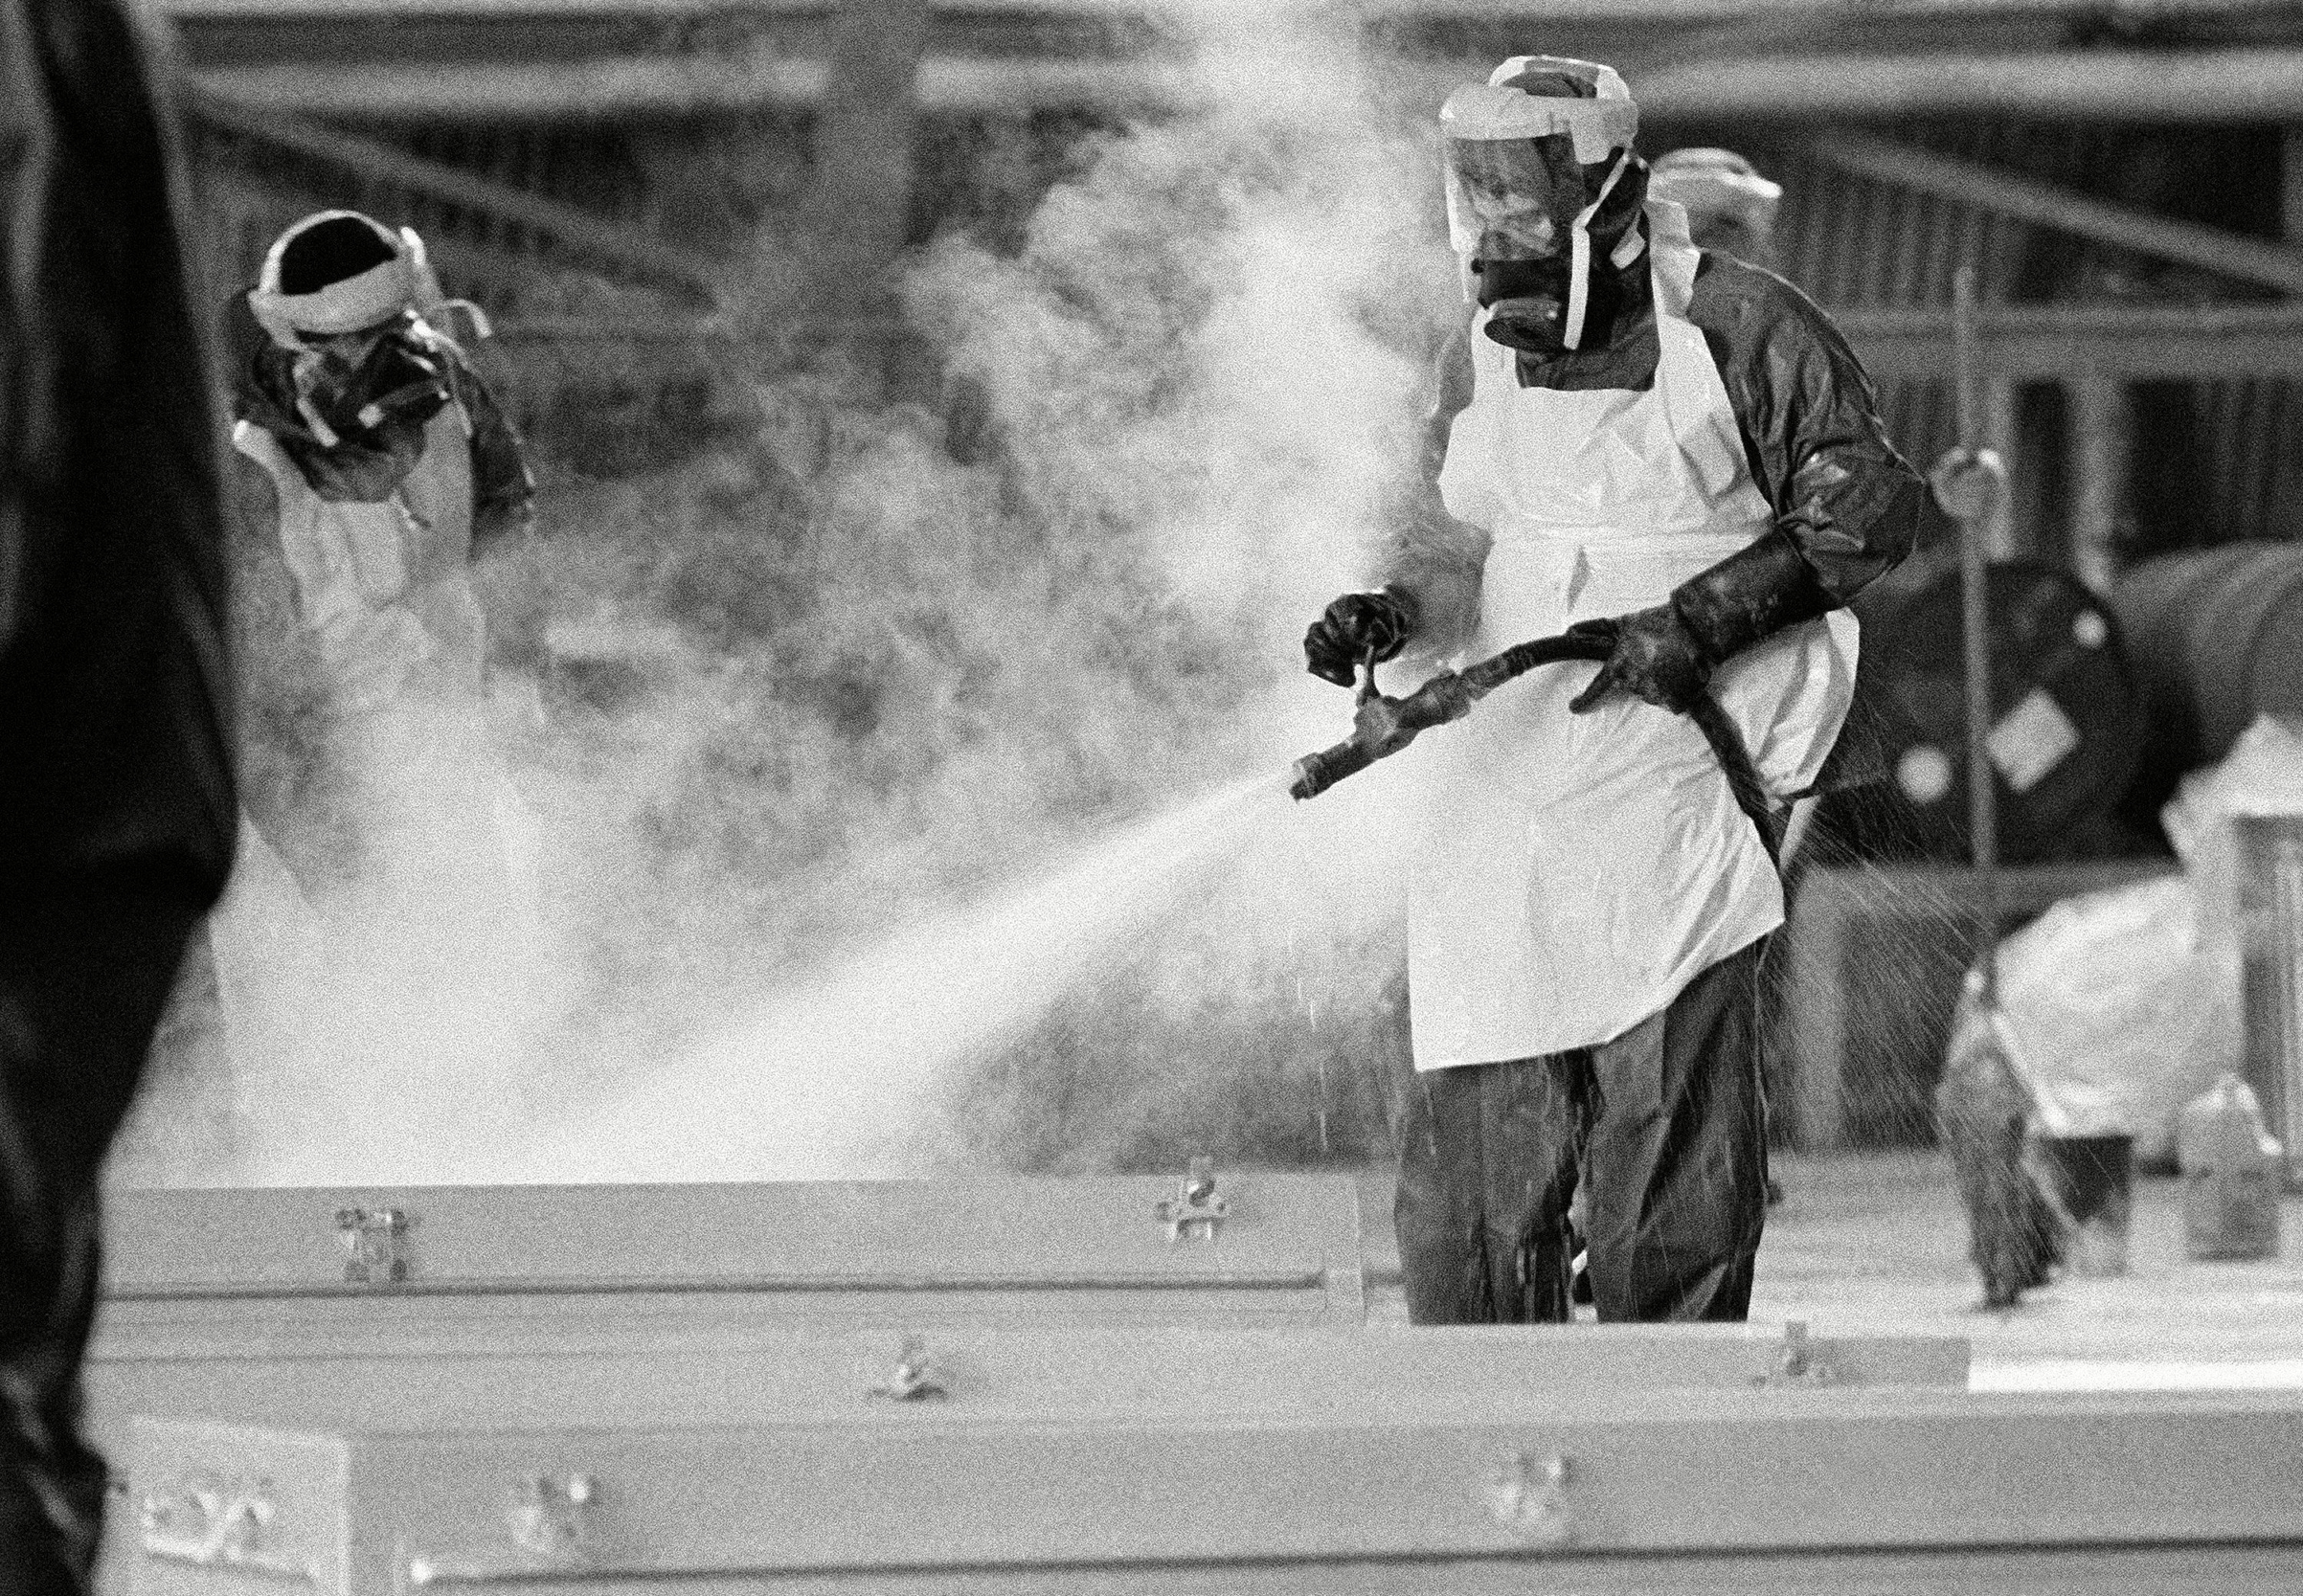 With more bodies being found at the Jonestown mass suicide scene in Guyana, the military is being asked to ship more caskets to bring the bodies back to the U.S. Here a volunteer airman uses steam mixed with chemicals to clean and disinfect a metal casket at Dover Air Force Base in Delaware, for reuse again in Guyana.